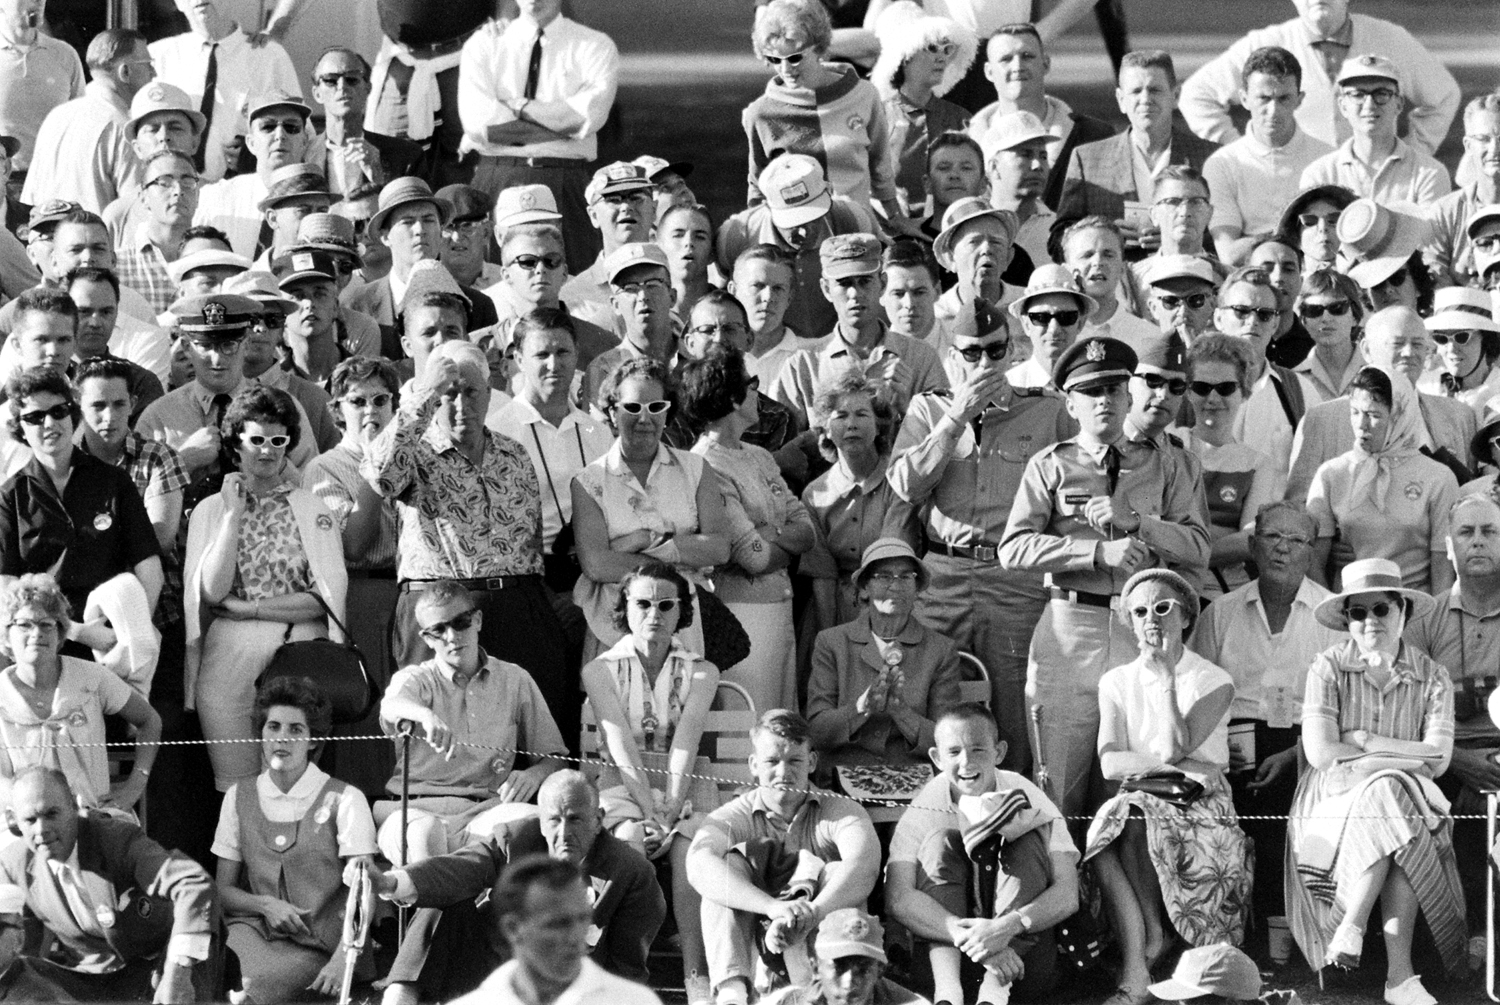 Crowd watching Arnold Palmer at the 1962 Masters Tournament.